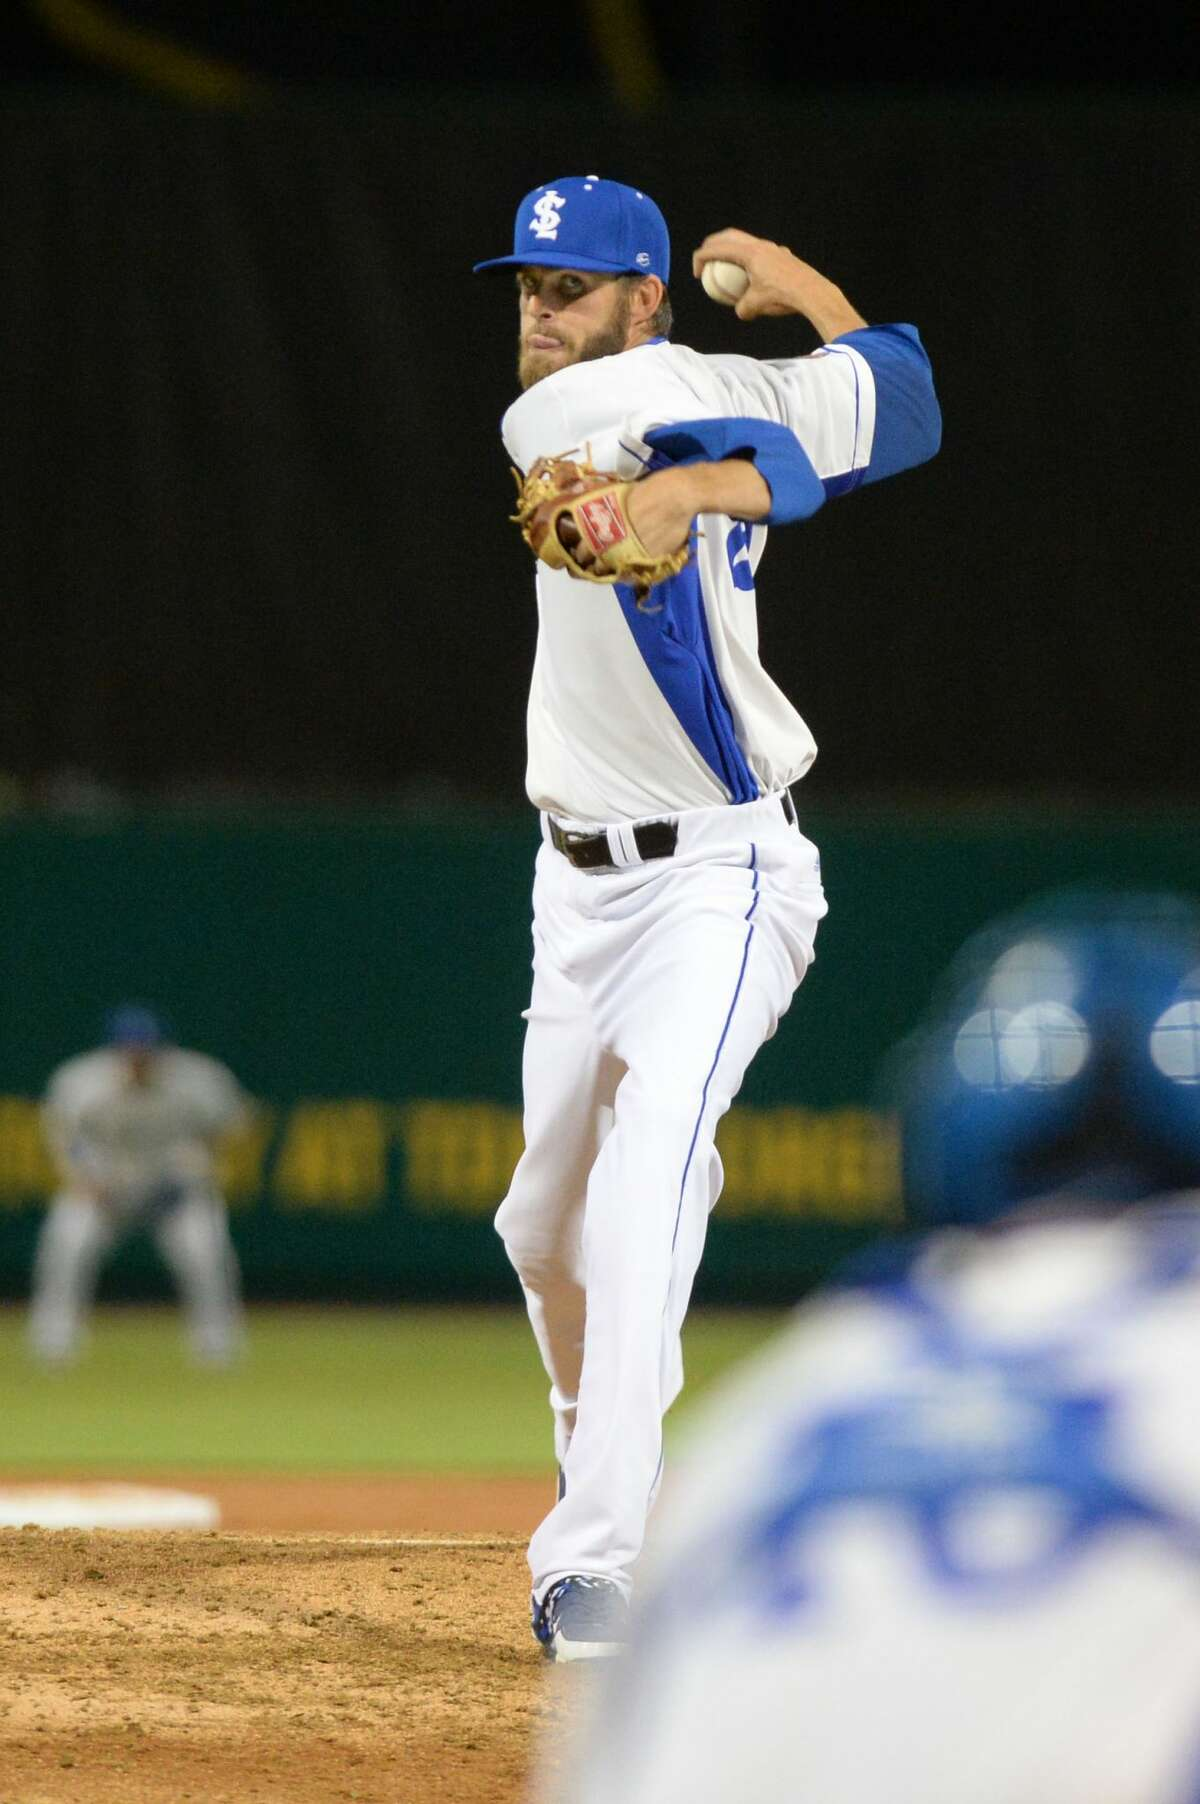 Skeeters starter Jake Hale (28) delivers a pitch in the fifth inning of an Atlantic League baseball game between the Sugar Land Skeeters and the Bridgeport Bluefish on Thursday April 20, 2017 at Constellation Field, Sugar Land, TX.